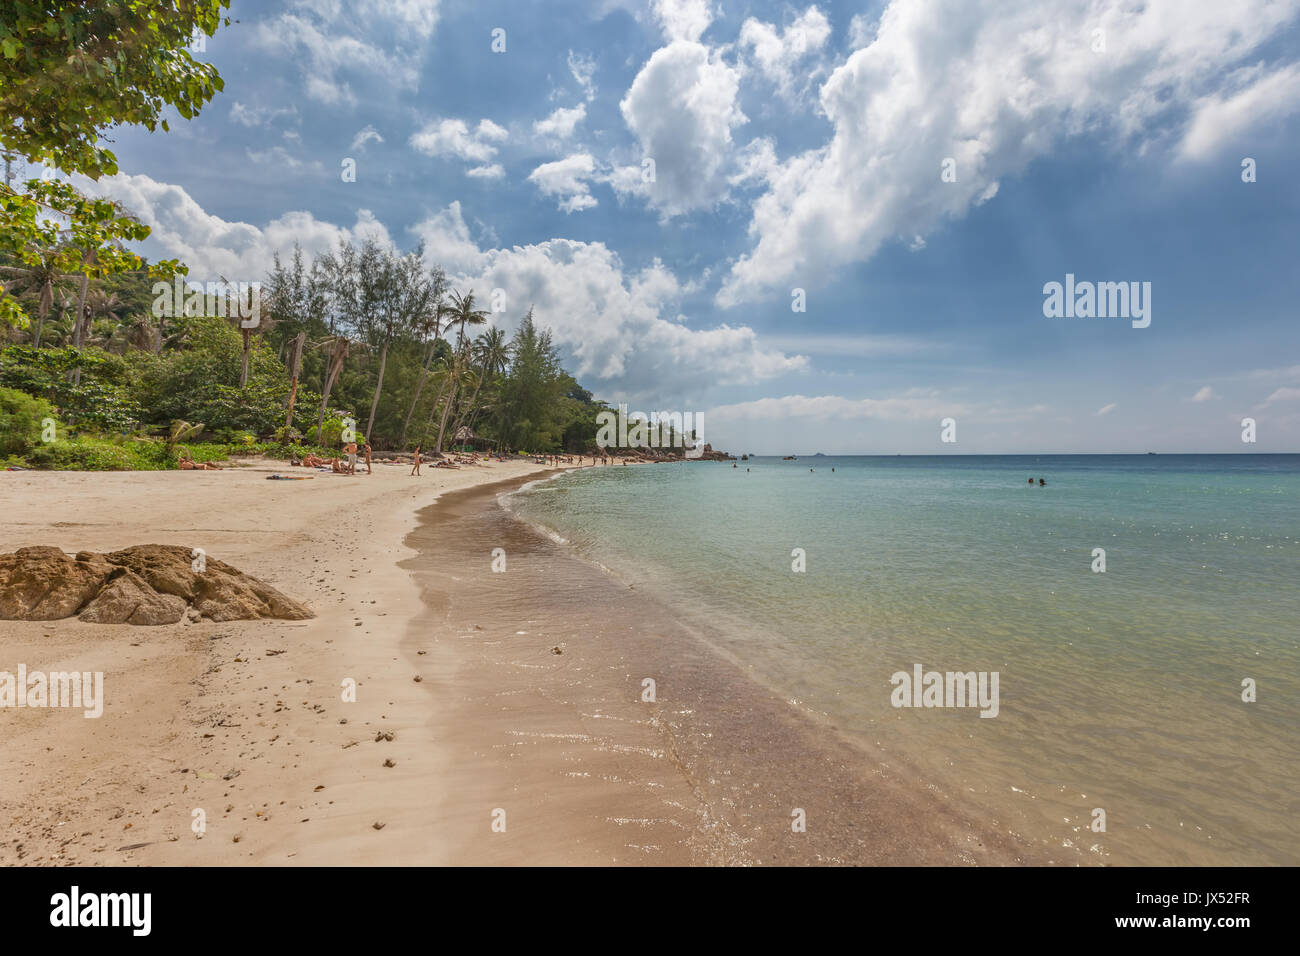 The Secret Beach, Koh Phangan island, Thailand Stock Photo